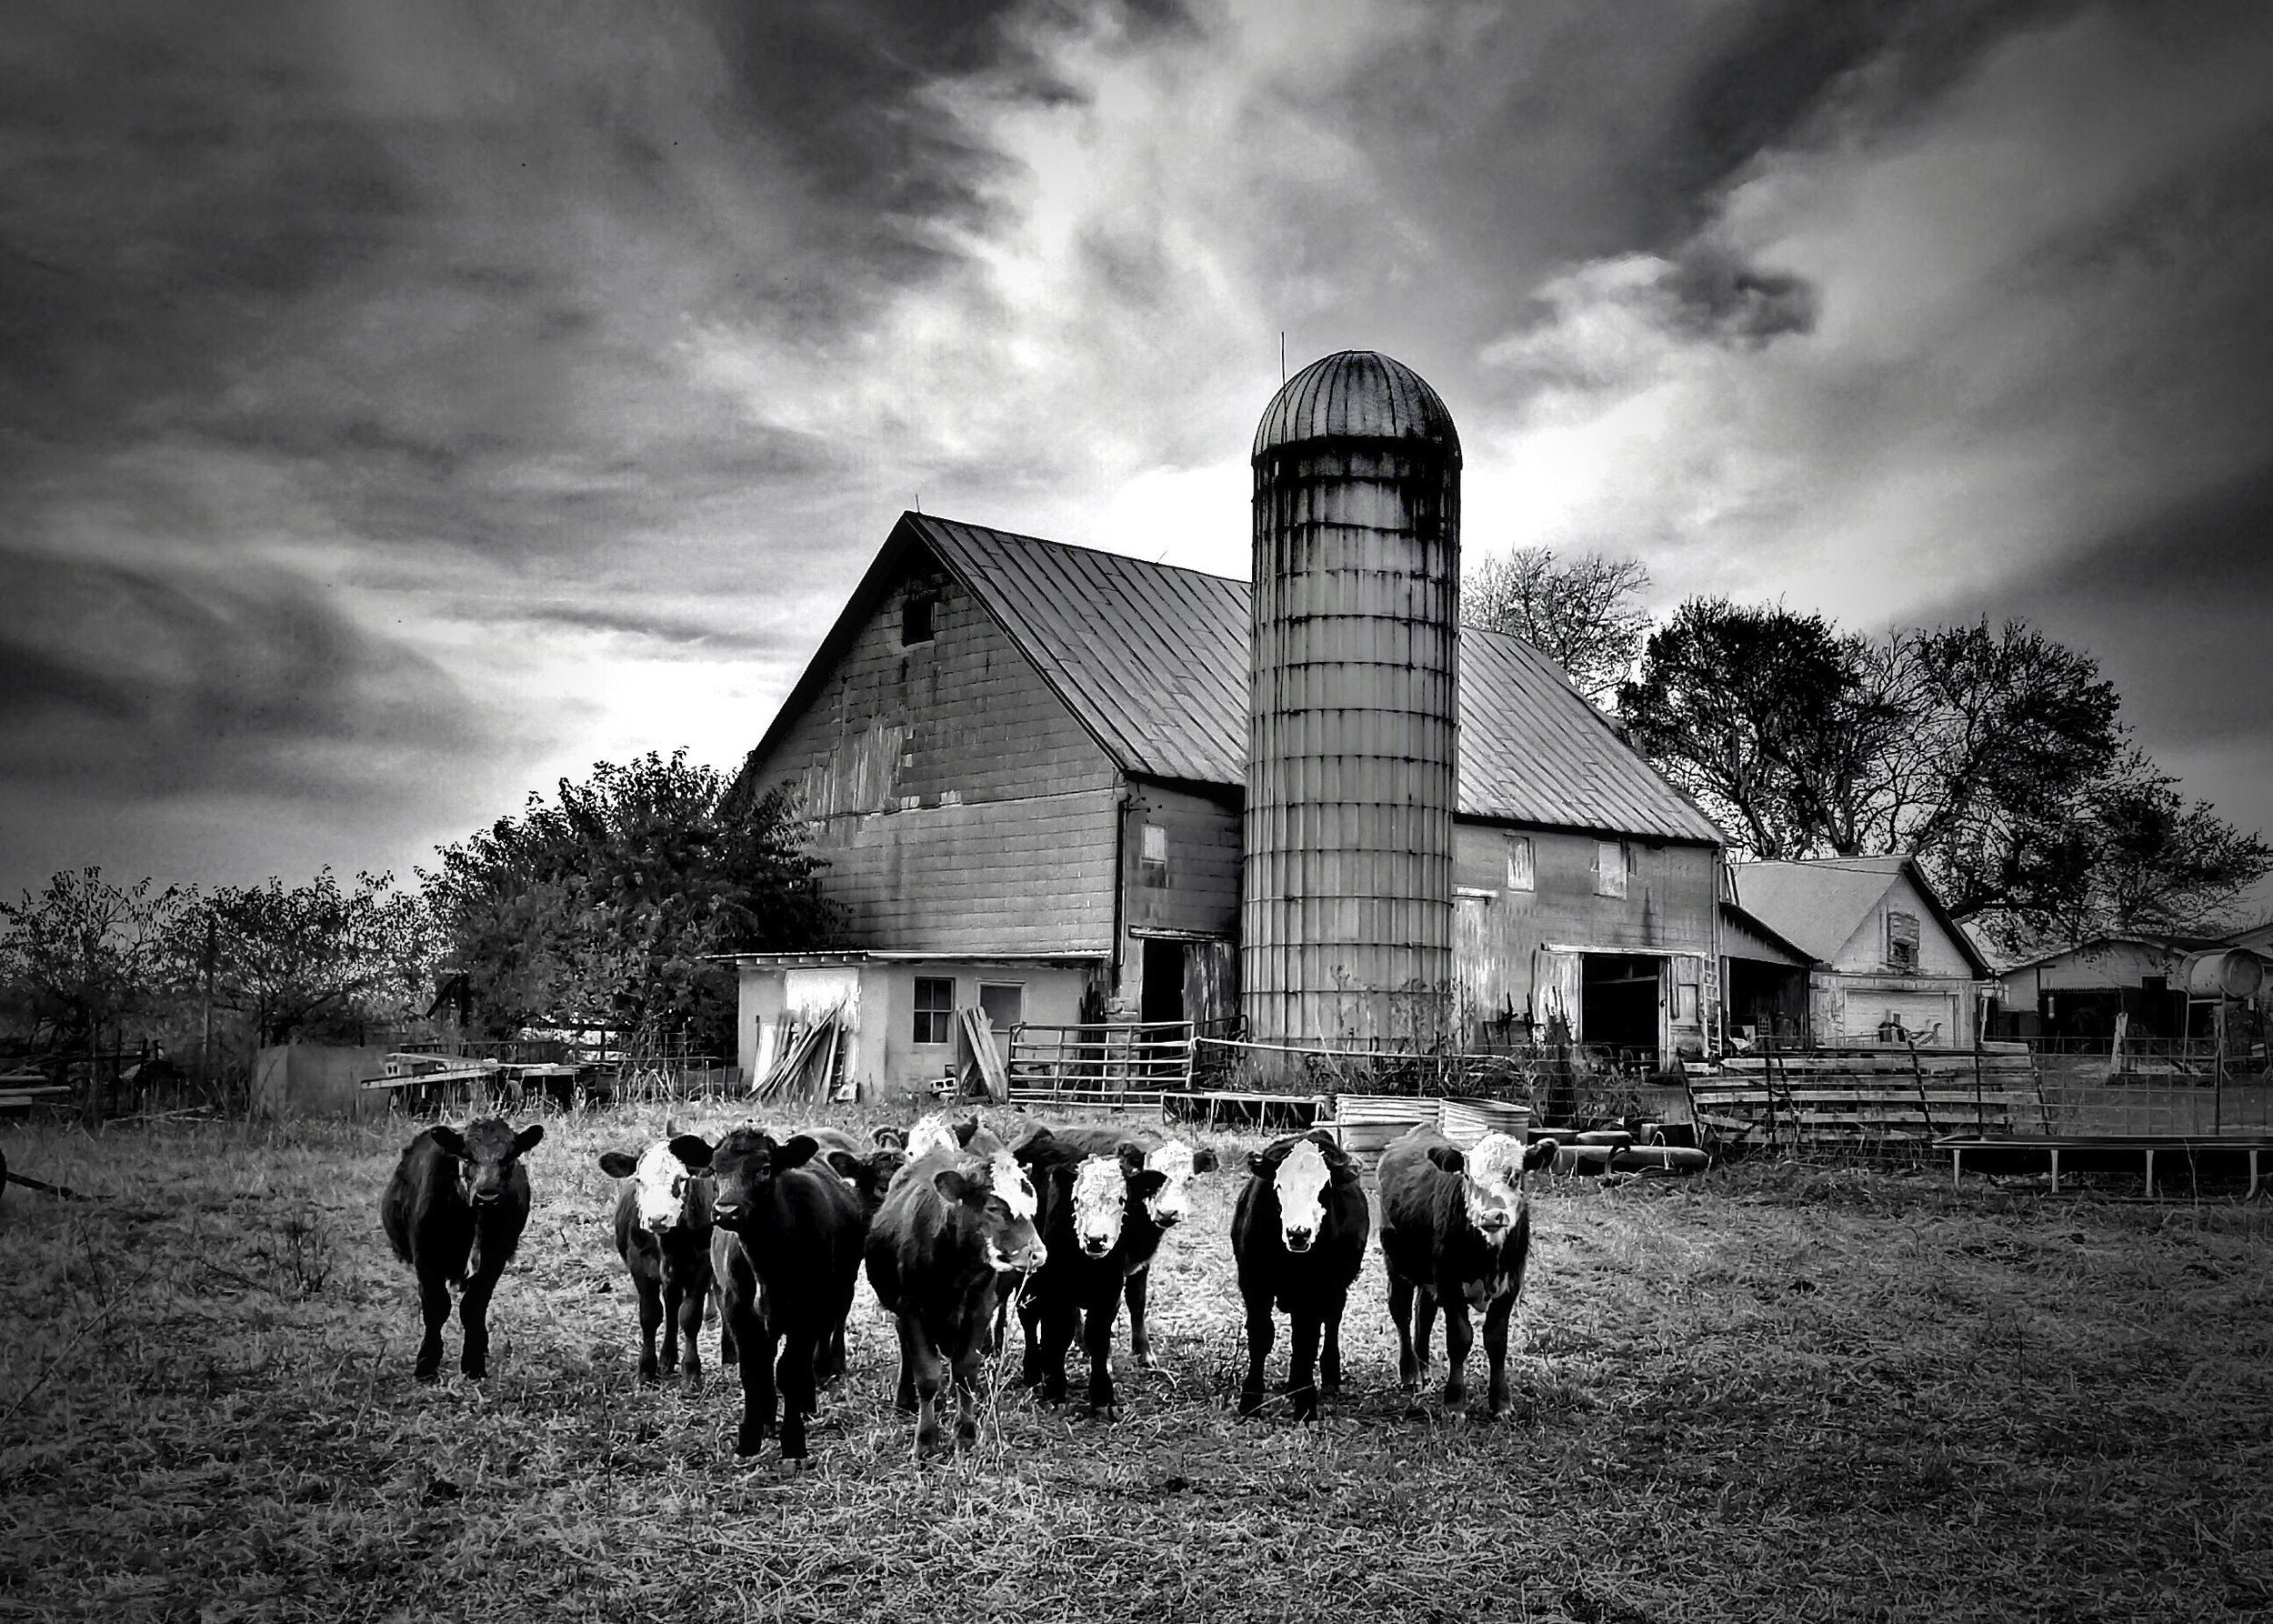 Heifers, Indiana Farm  [Photo Credit: Rad A. Drew]